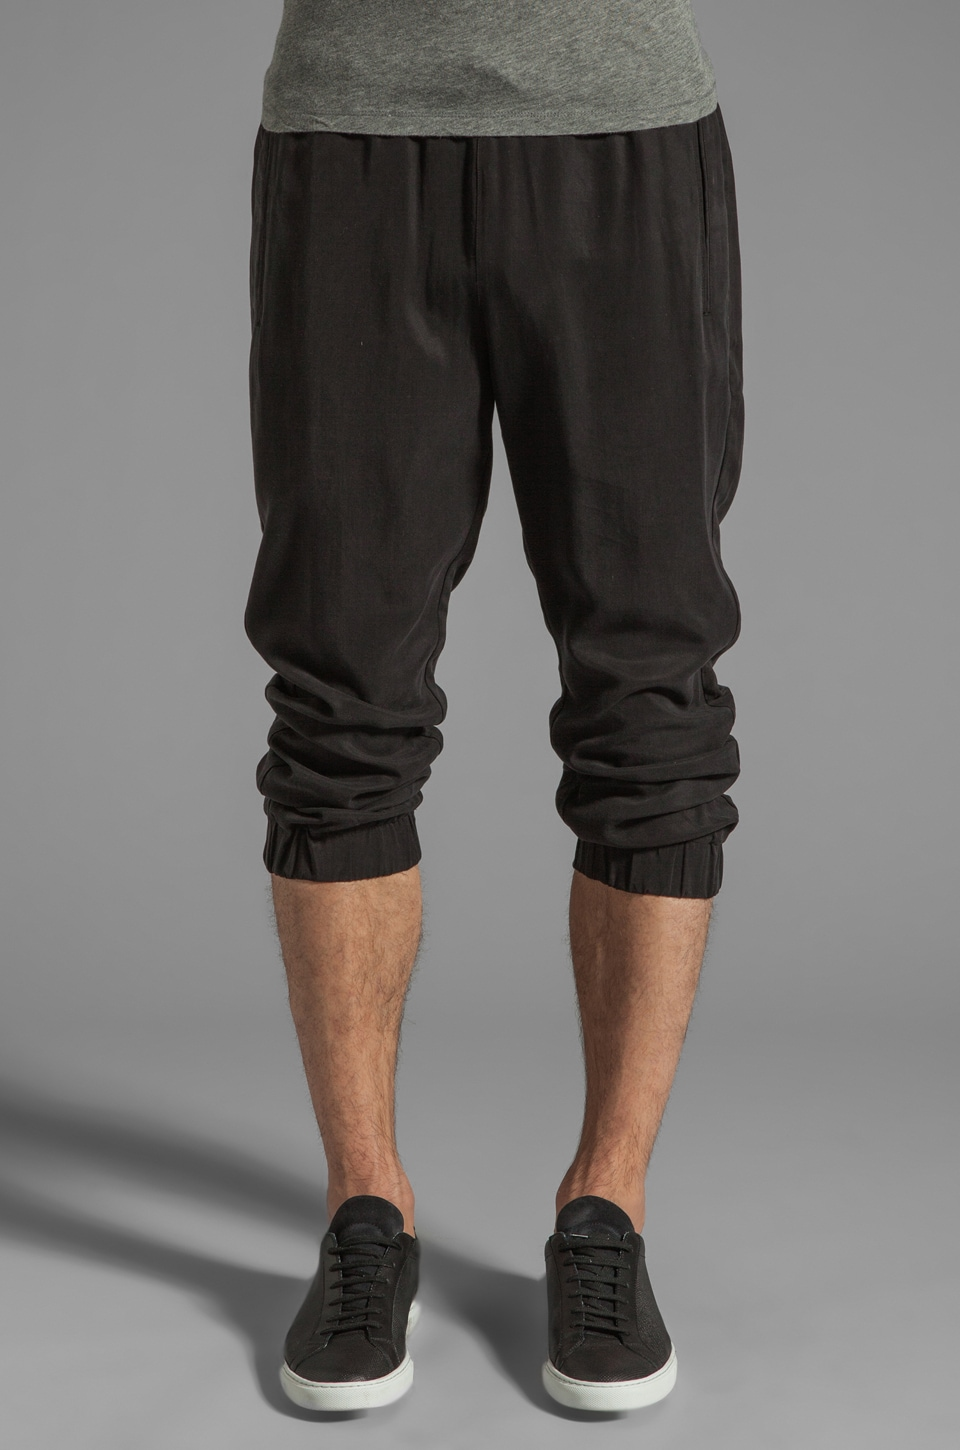 Nicholas K Boyer Pant in Black